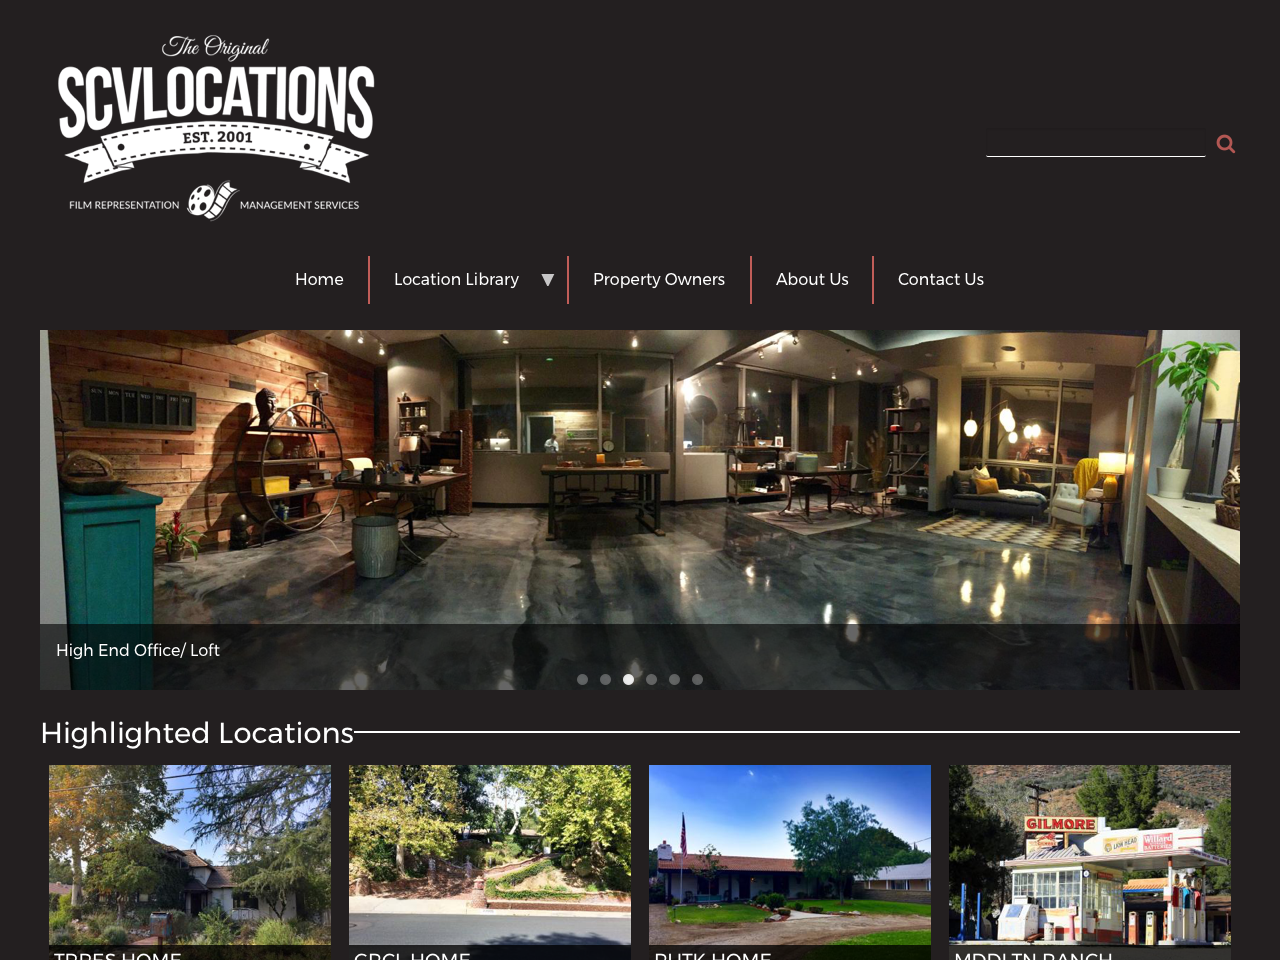 SCV Locations - New Website